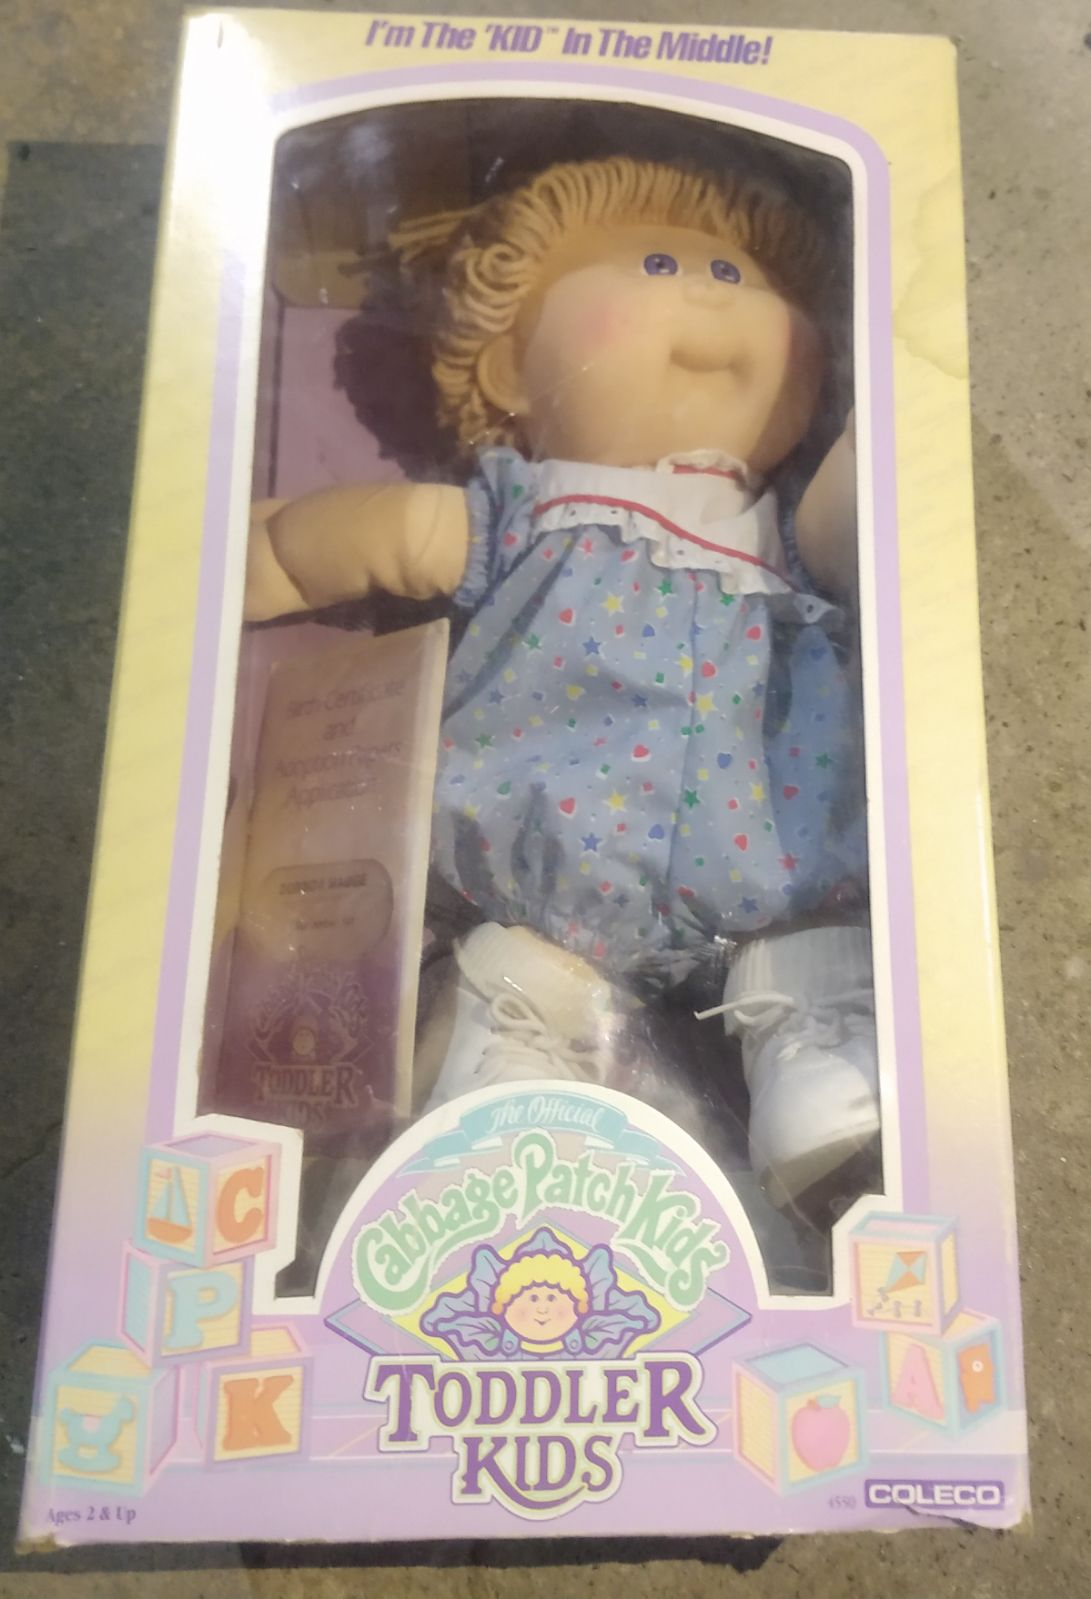 1987 Cabbage Patch Kids Toddler